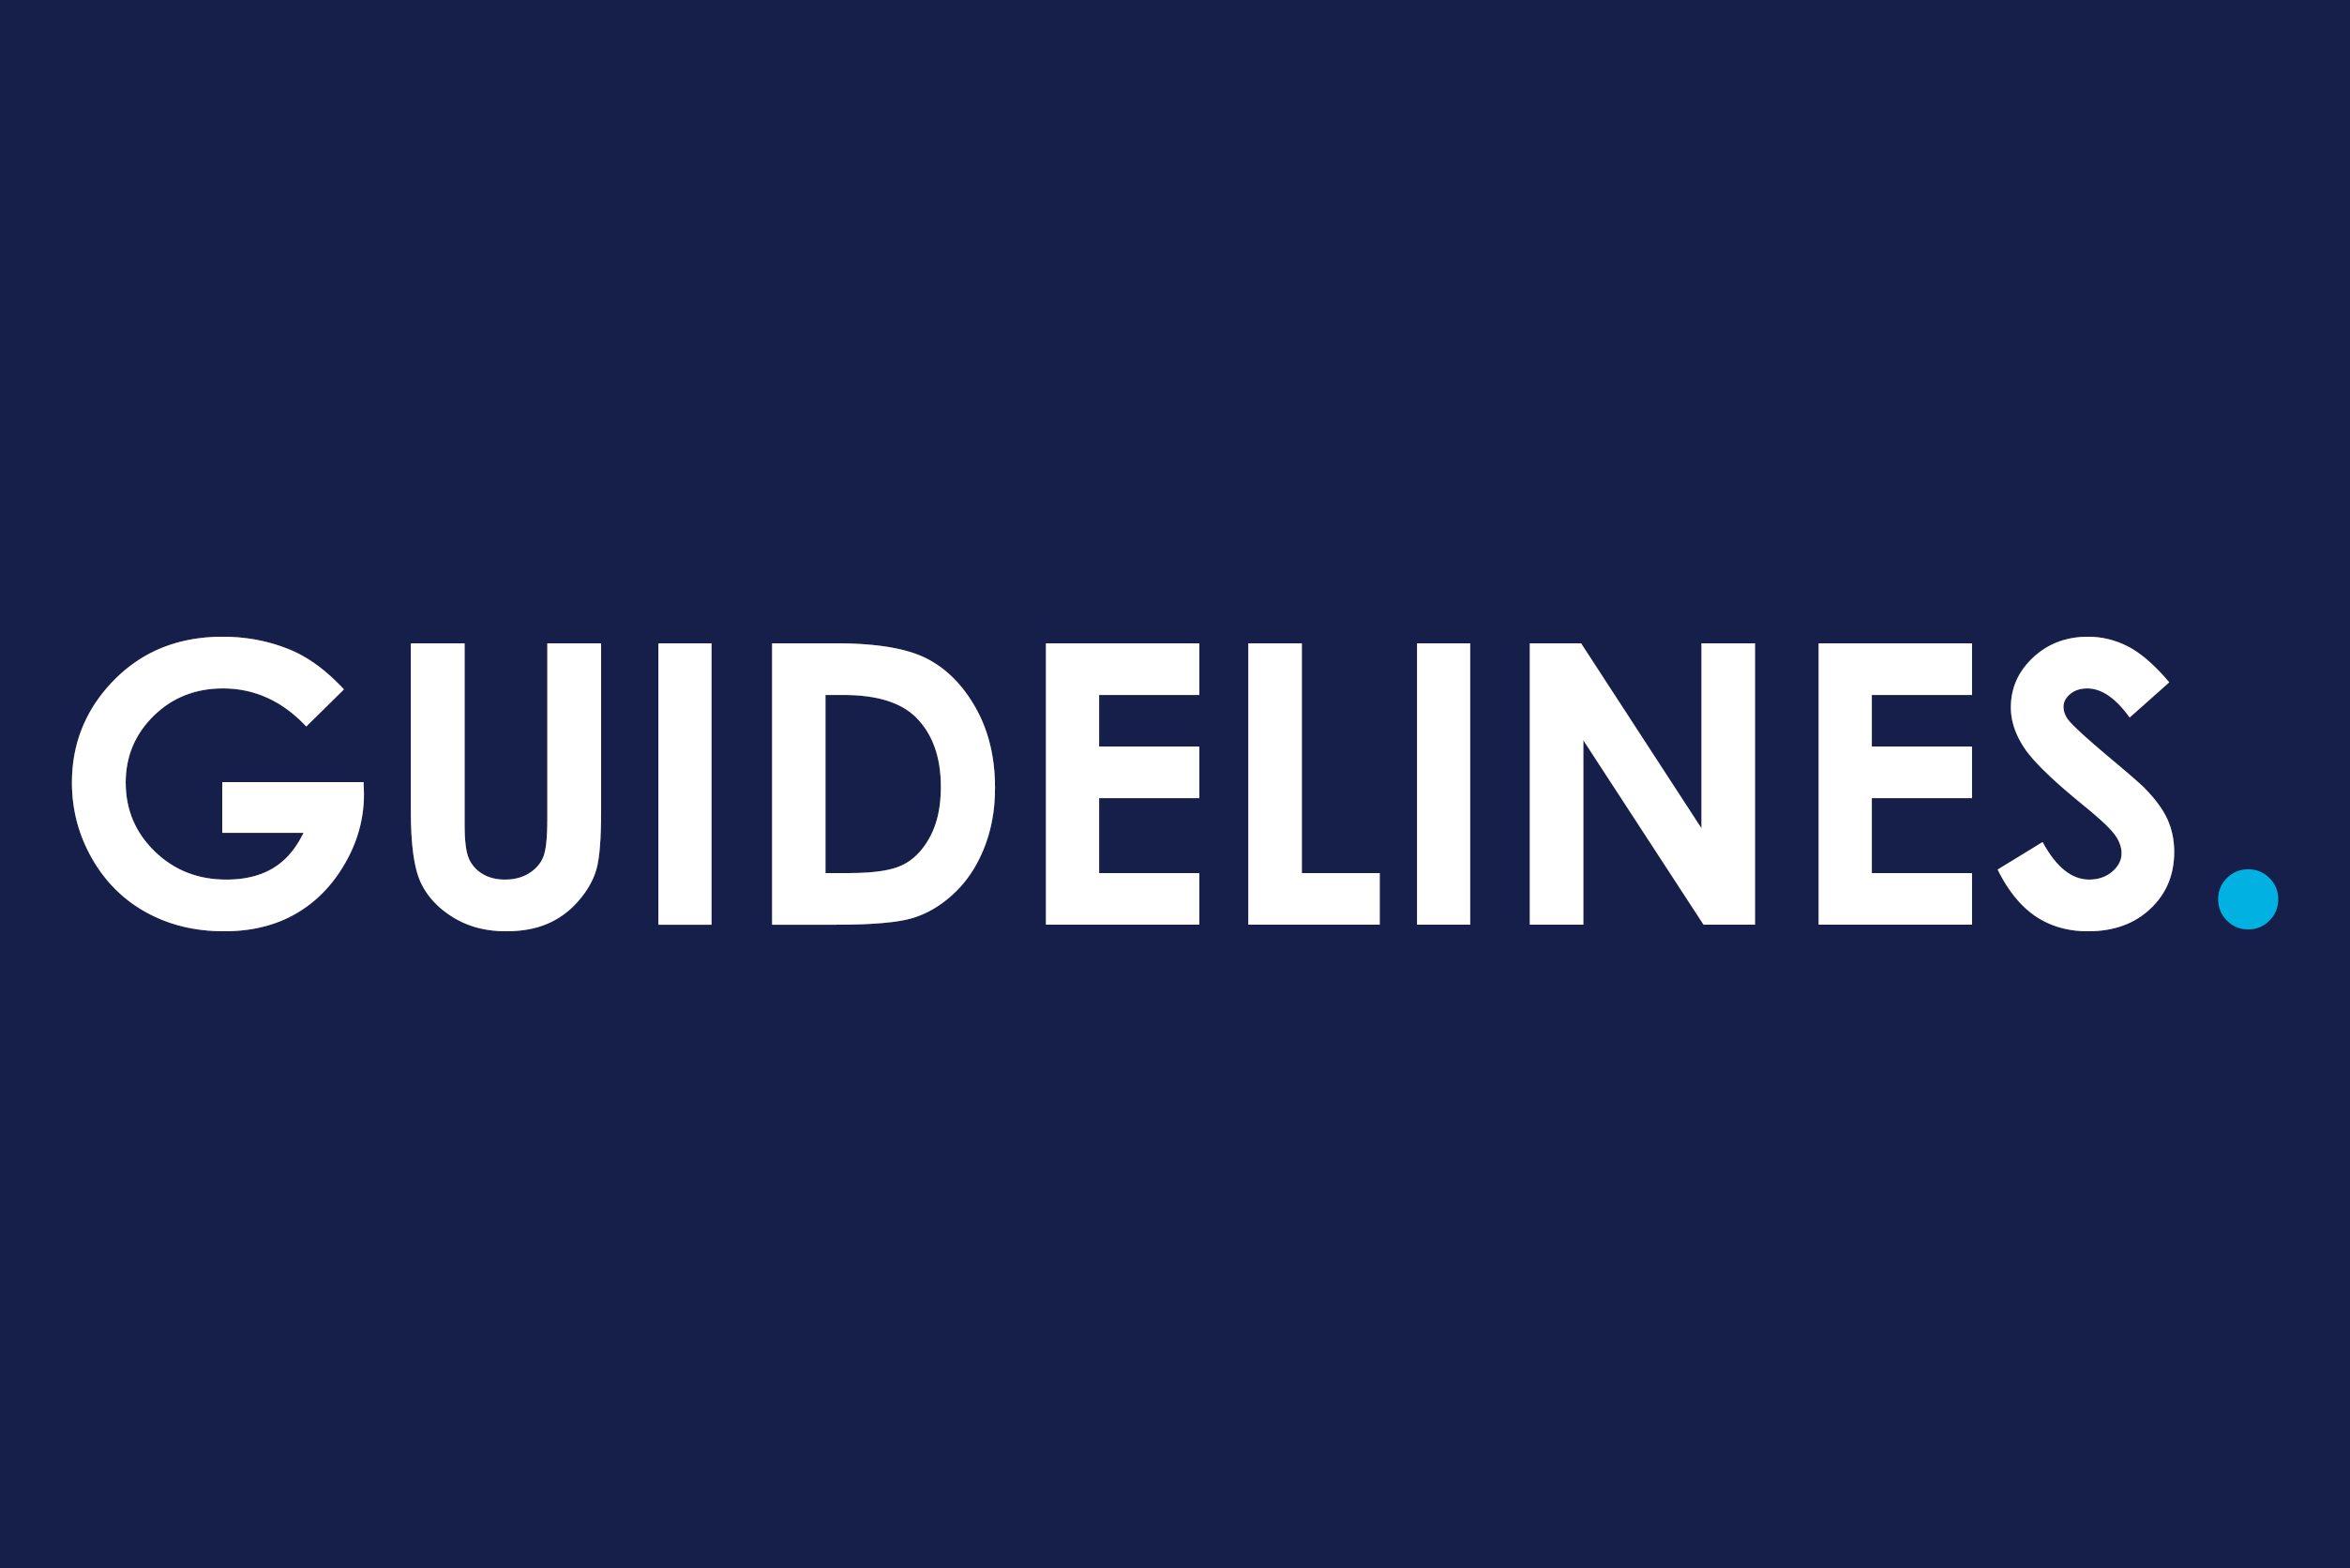 Guidelines-va consulting